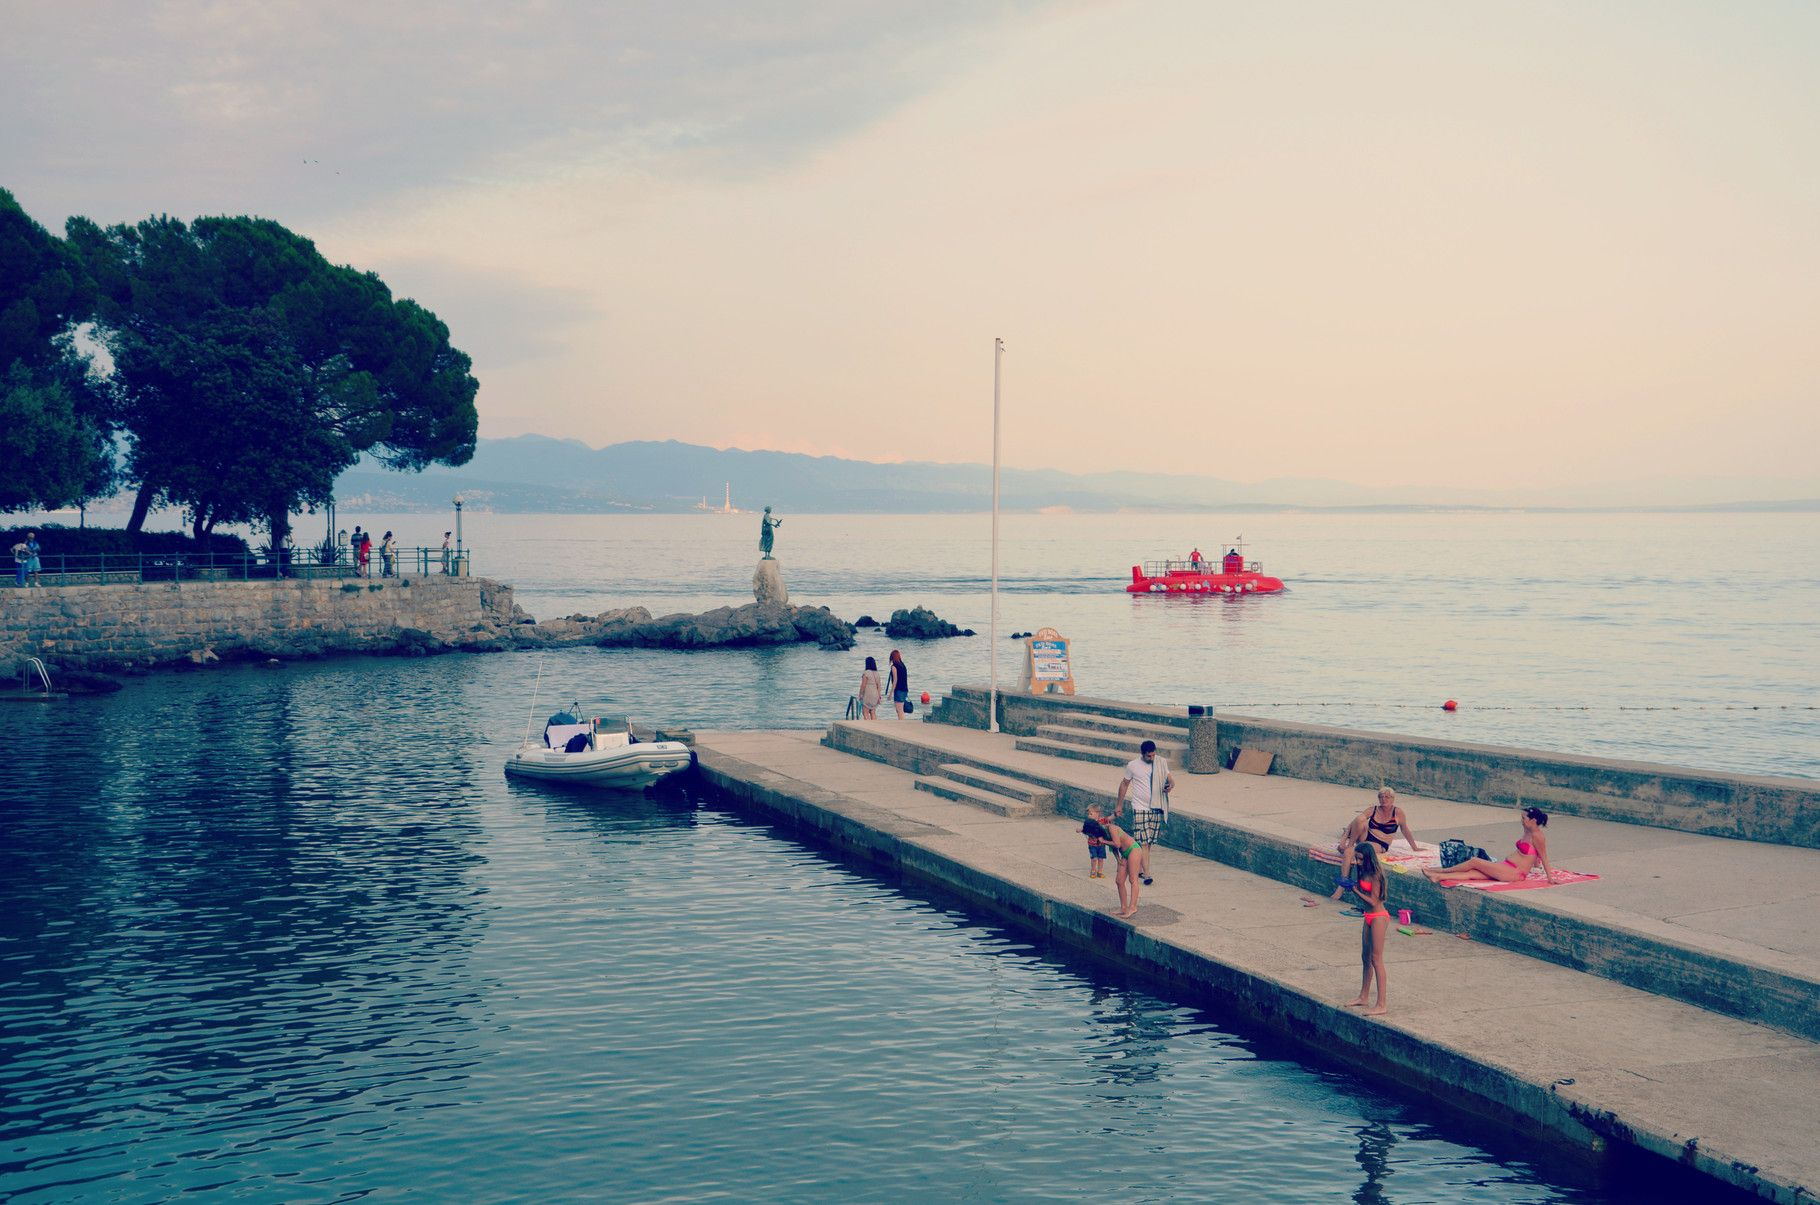 Opatija Croatia - Copyright European Best Destinations. More about Croatia on this free and online travel guide: http://www.europeanbestdestinations.com/travel-guide/zagreb-and-croatia